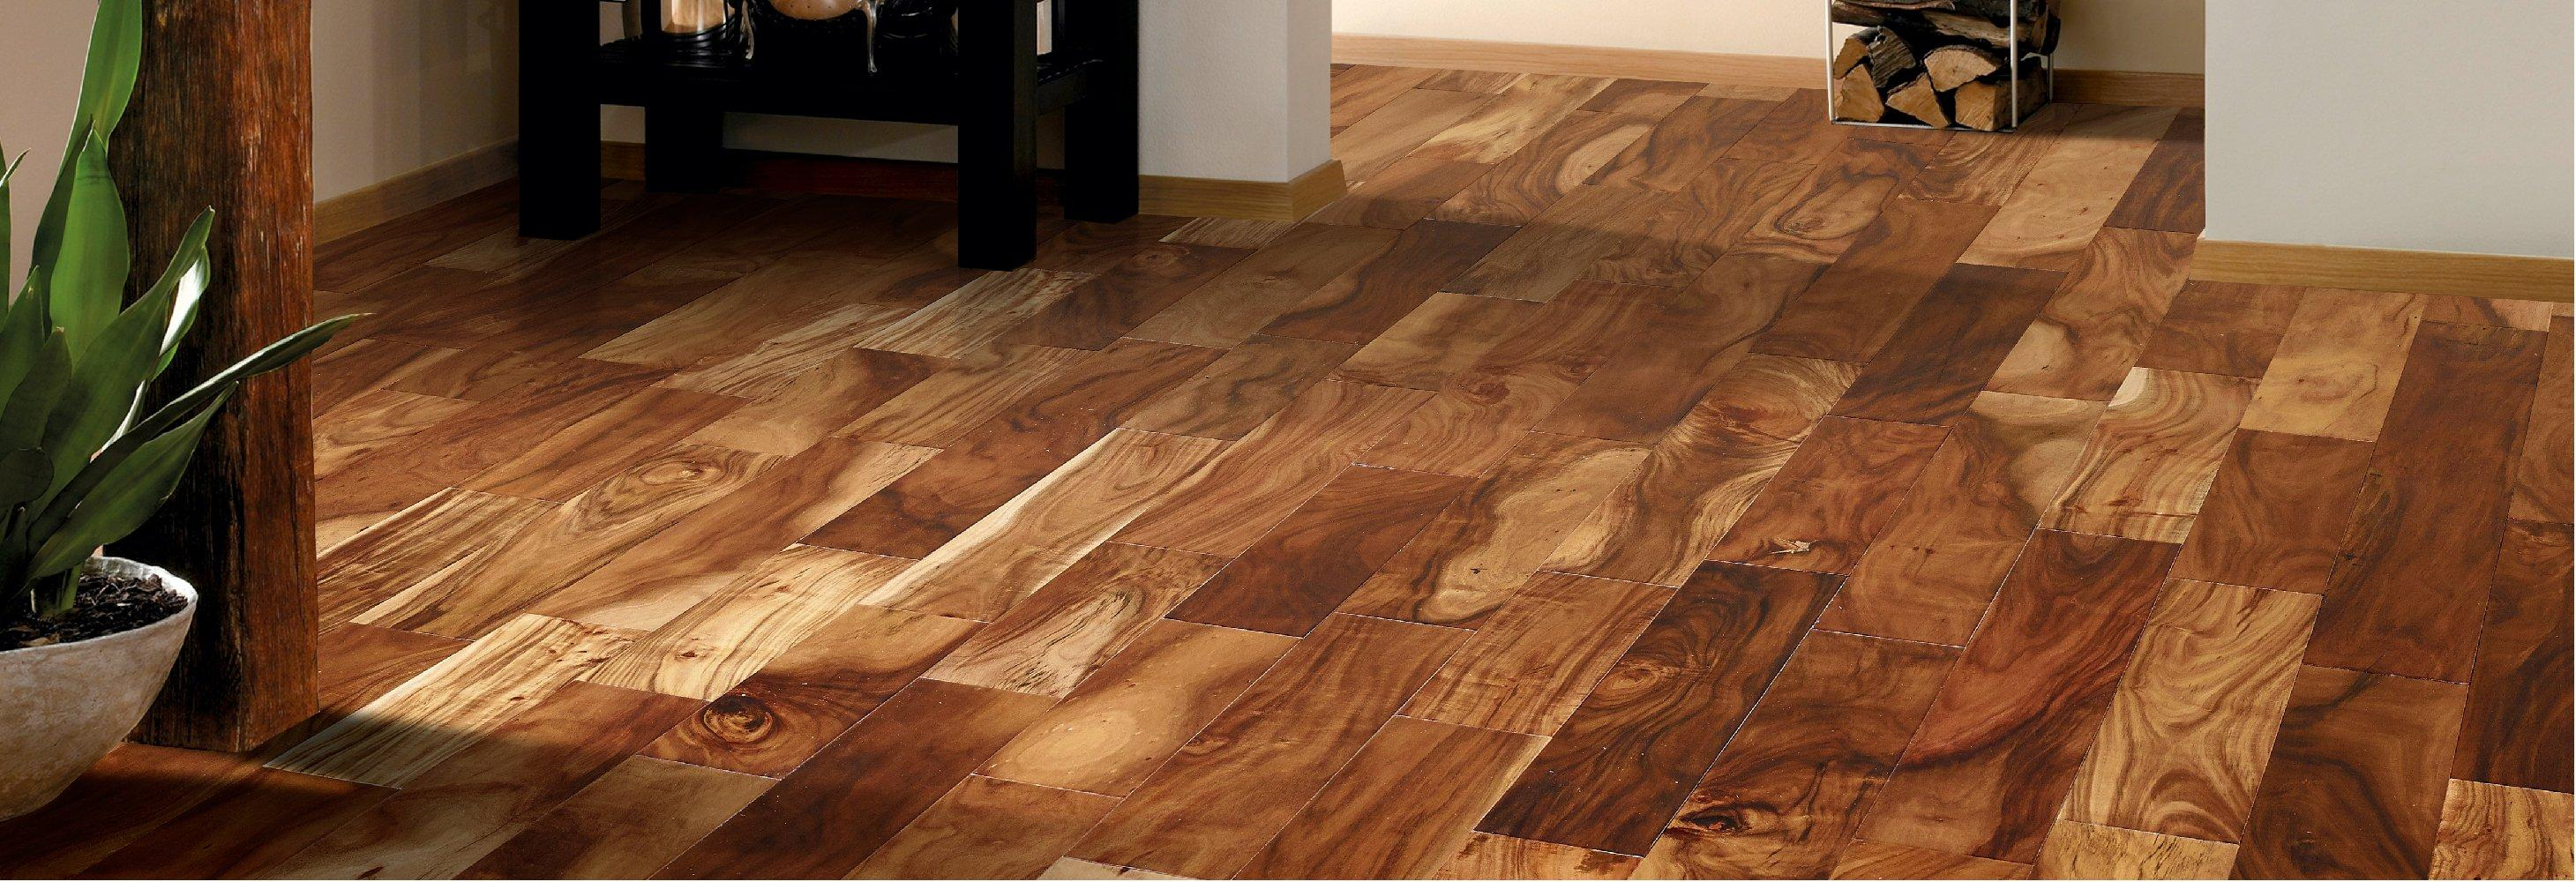 engineered wood engineered hardwood flooring ZQKHEVW